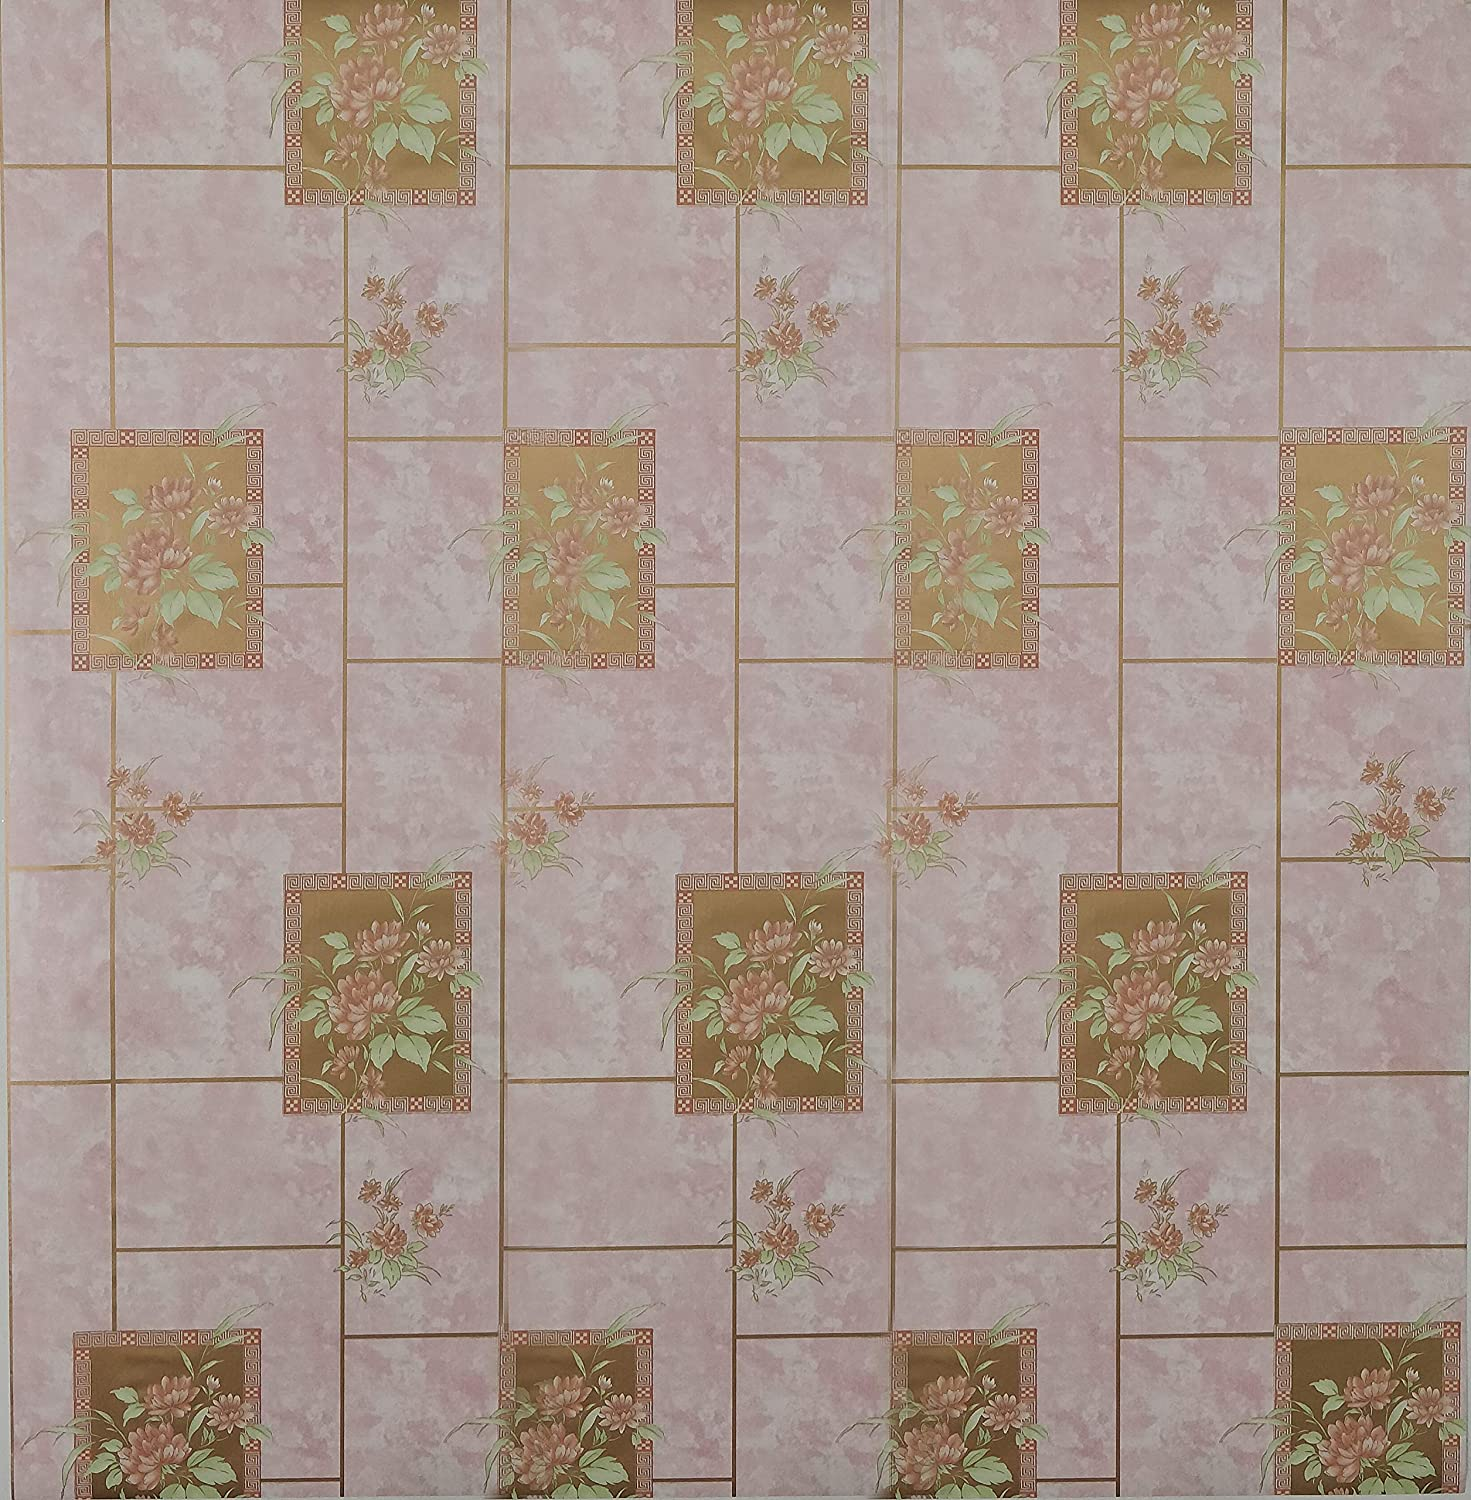 Dundee Deco AZ-F8193 Floral Printed Pink, Green Flowers in Tiles Peel and Stick Self Adhesive Removable Wallpaper, Roll 18 ft. X 18 in. (5.5m X 45cm), 26.6 sq. ft. (2.5 sq. m)